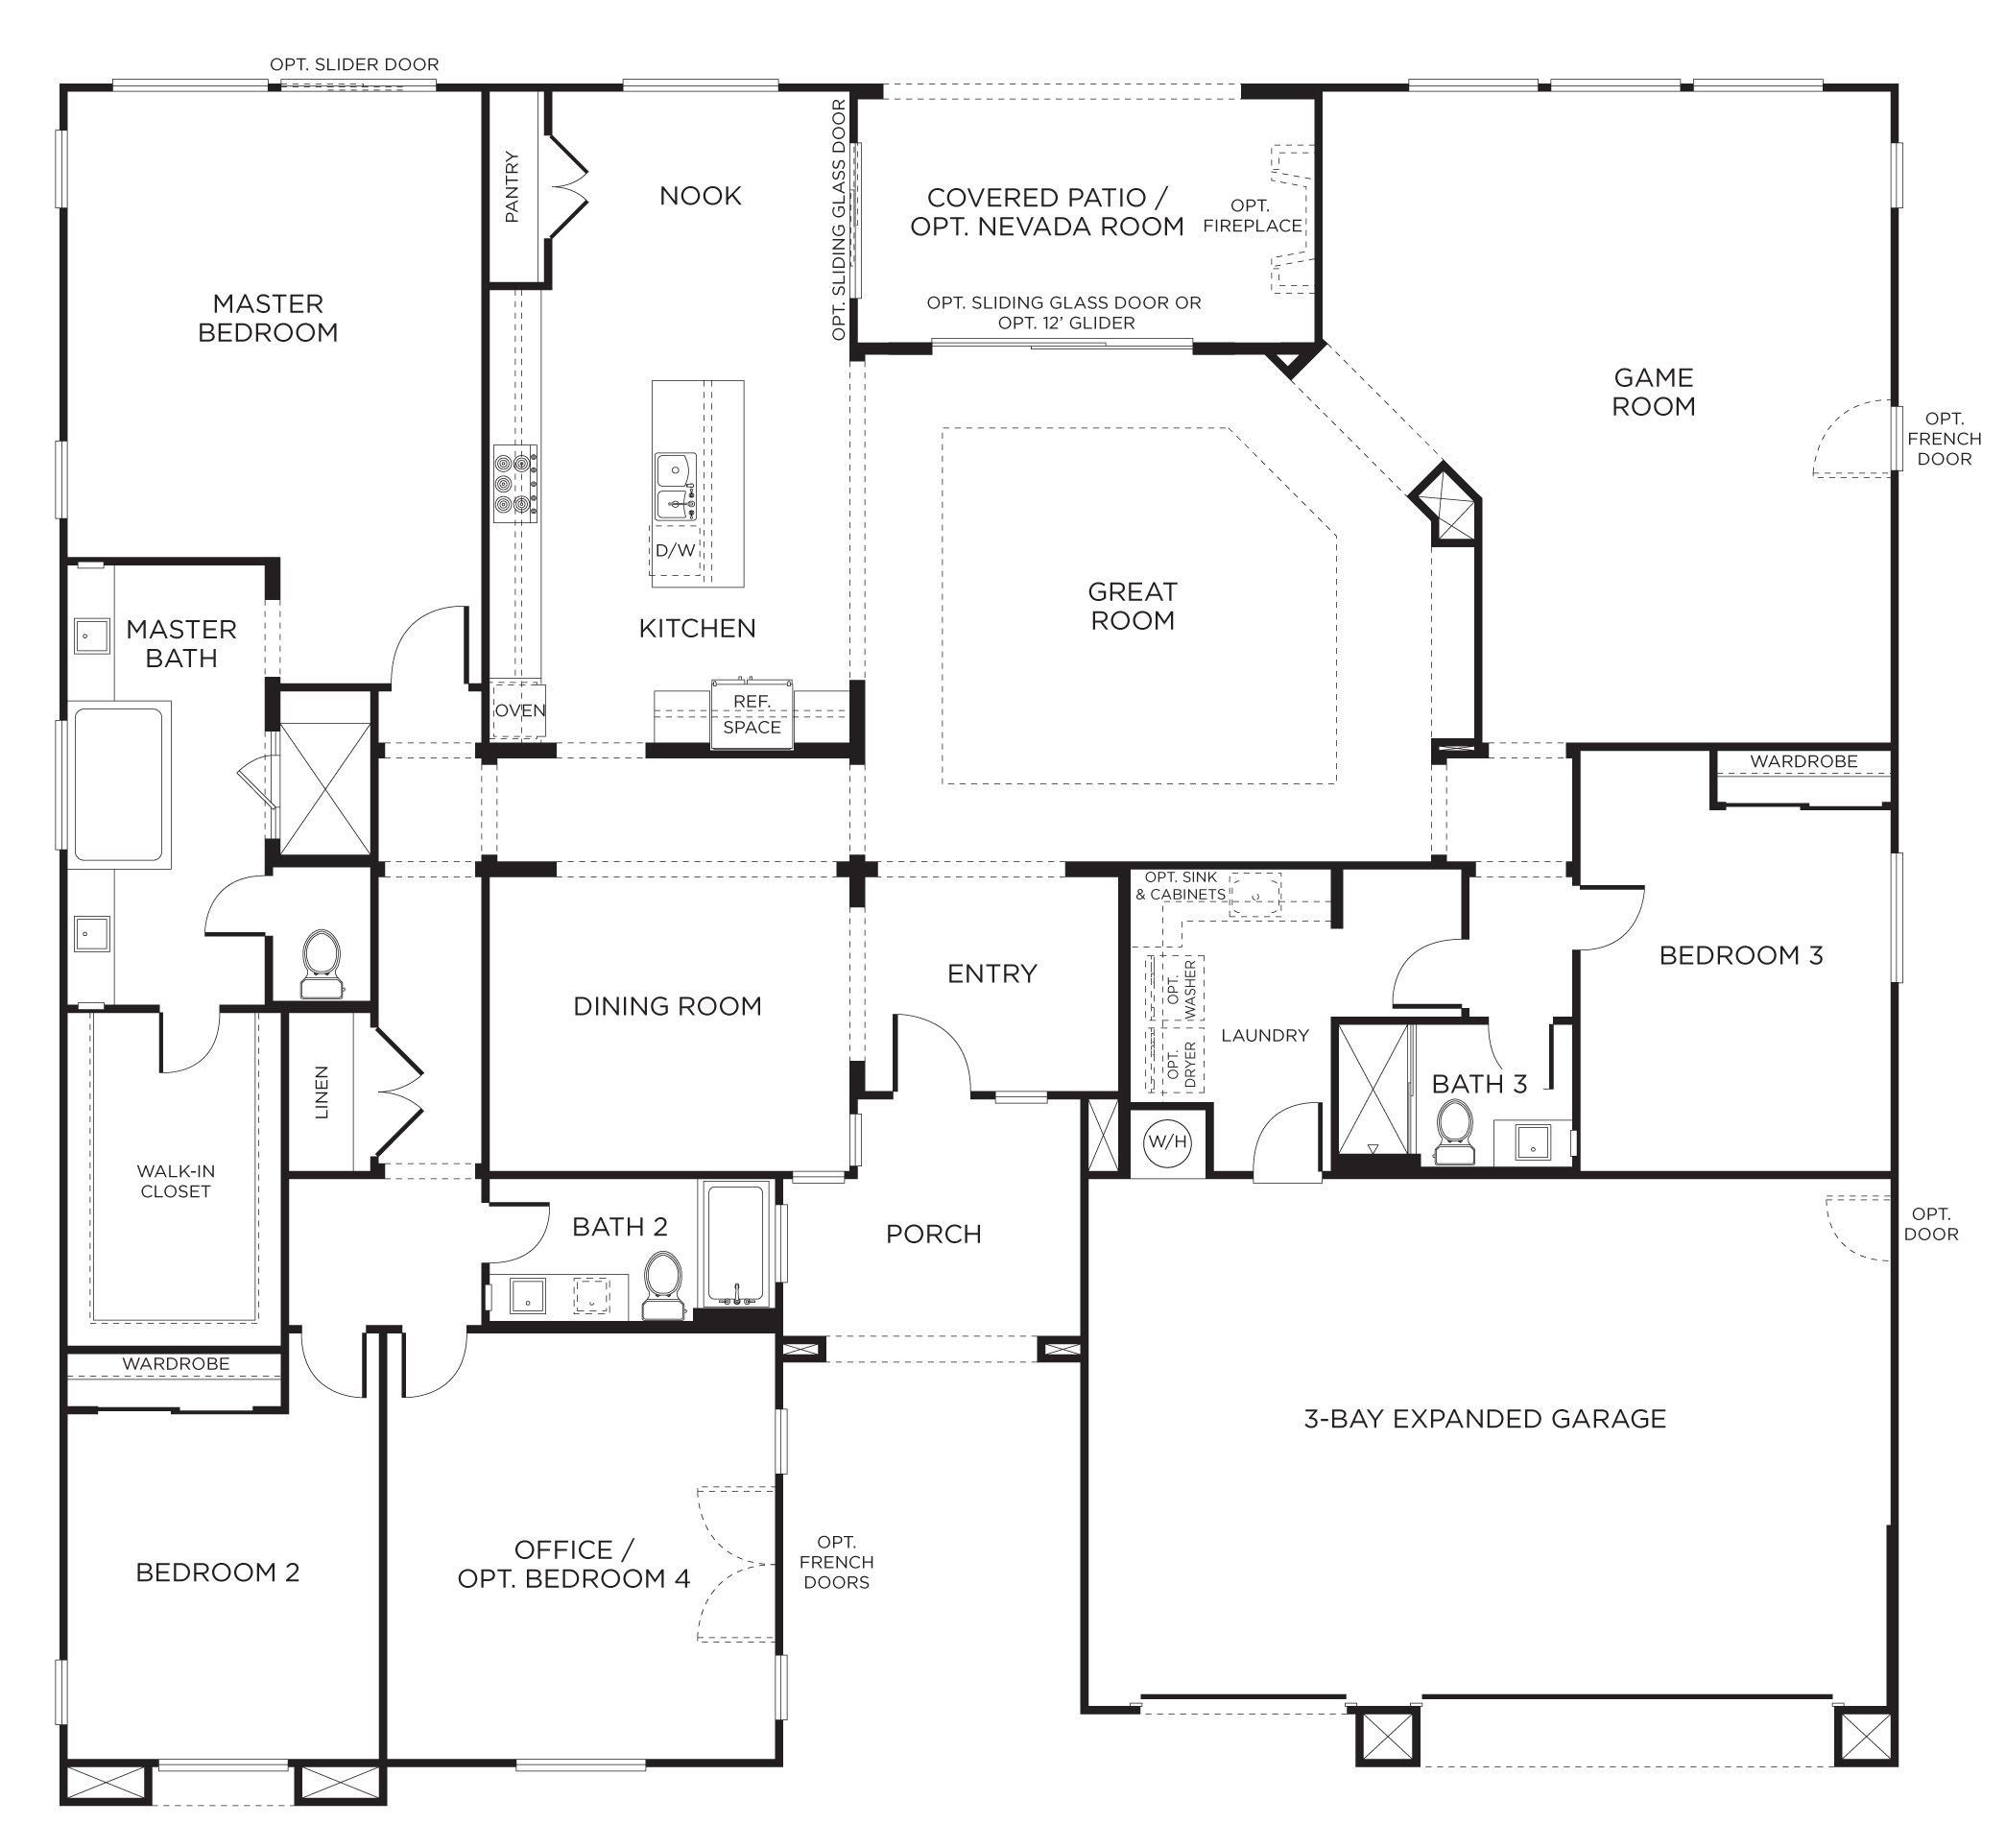 Floorplan 2 3 4 bedrooms 3 bathrooms 3400 square feet for Four bedroom house plans with basement